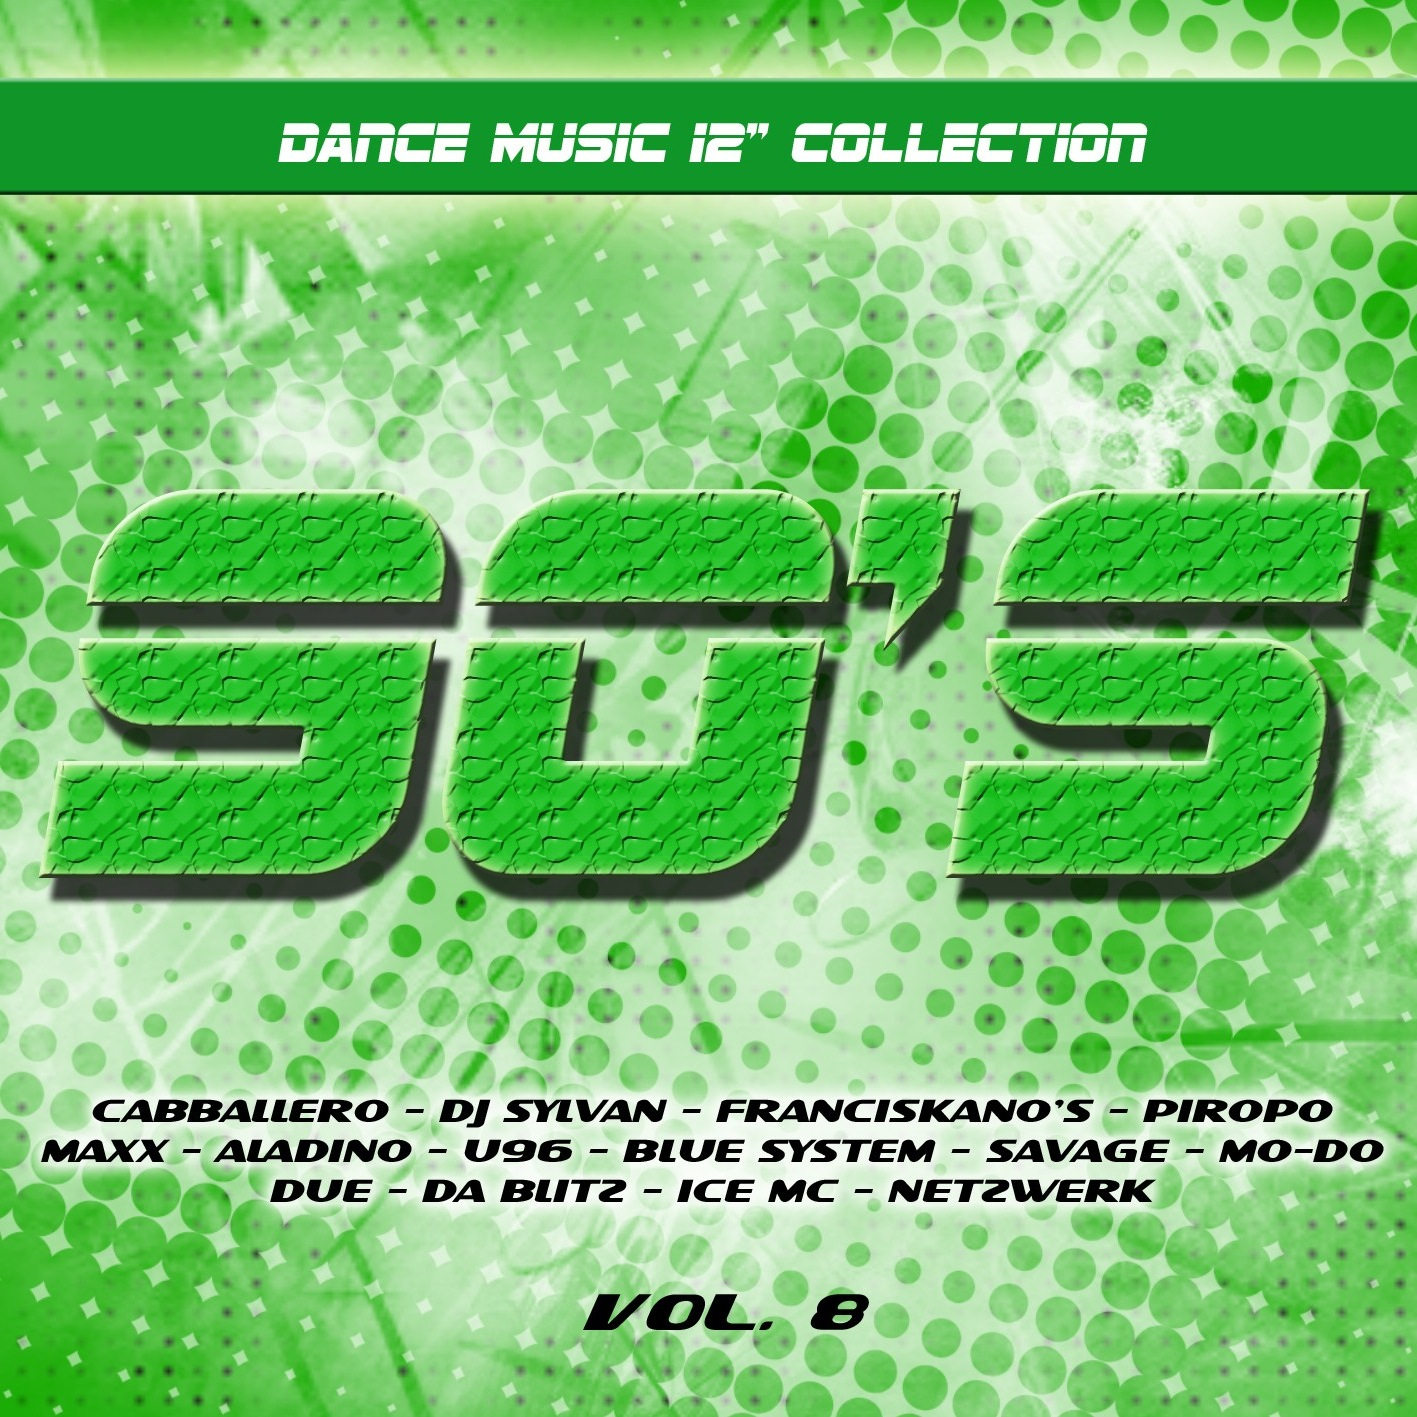 90 s dance music 12 collection volume 08 90 39 s dance for Piano dance music 90 s